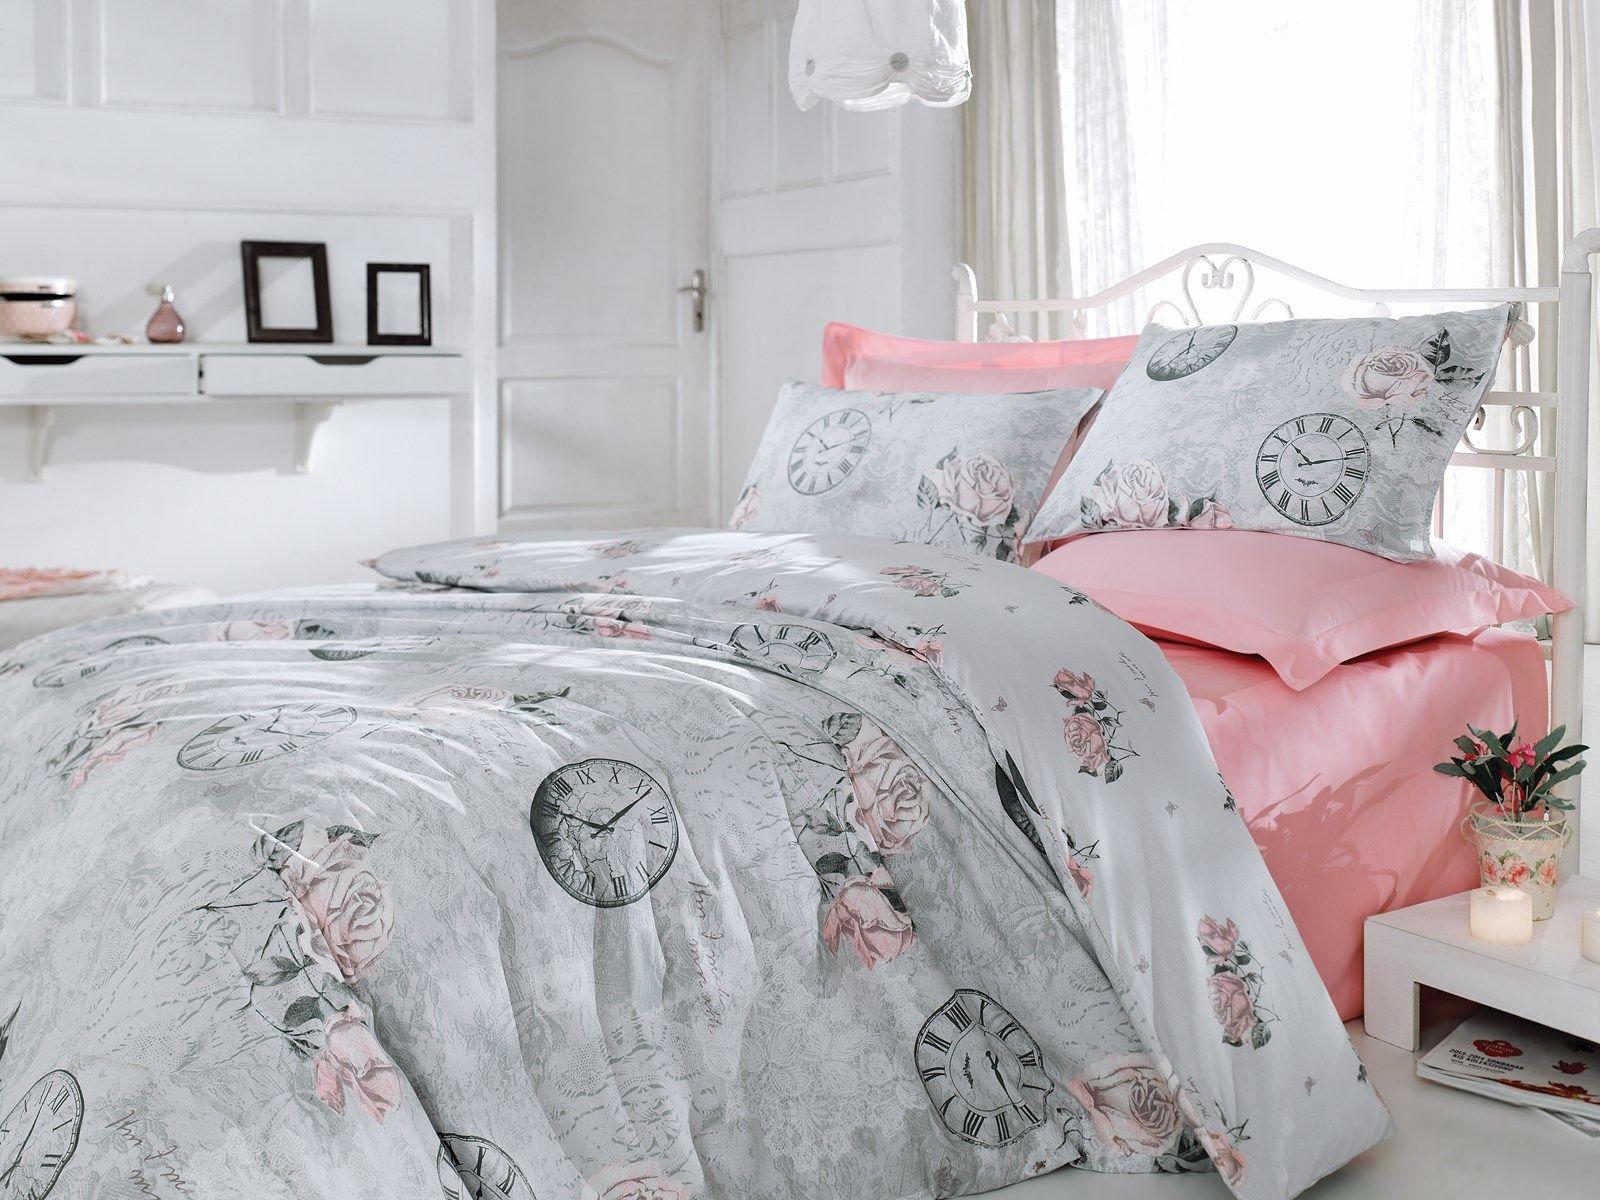 Bed Linen Items2